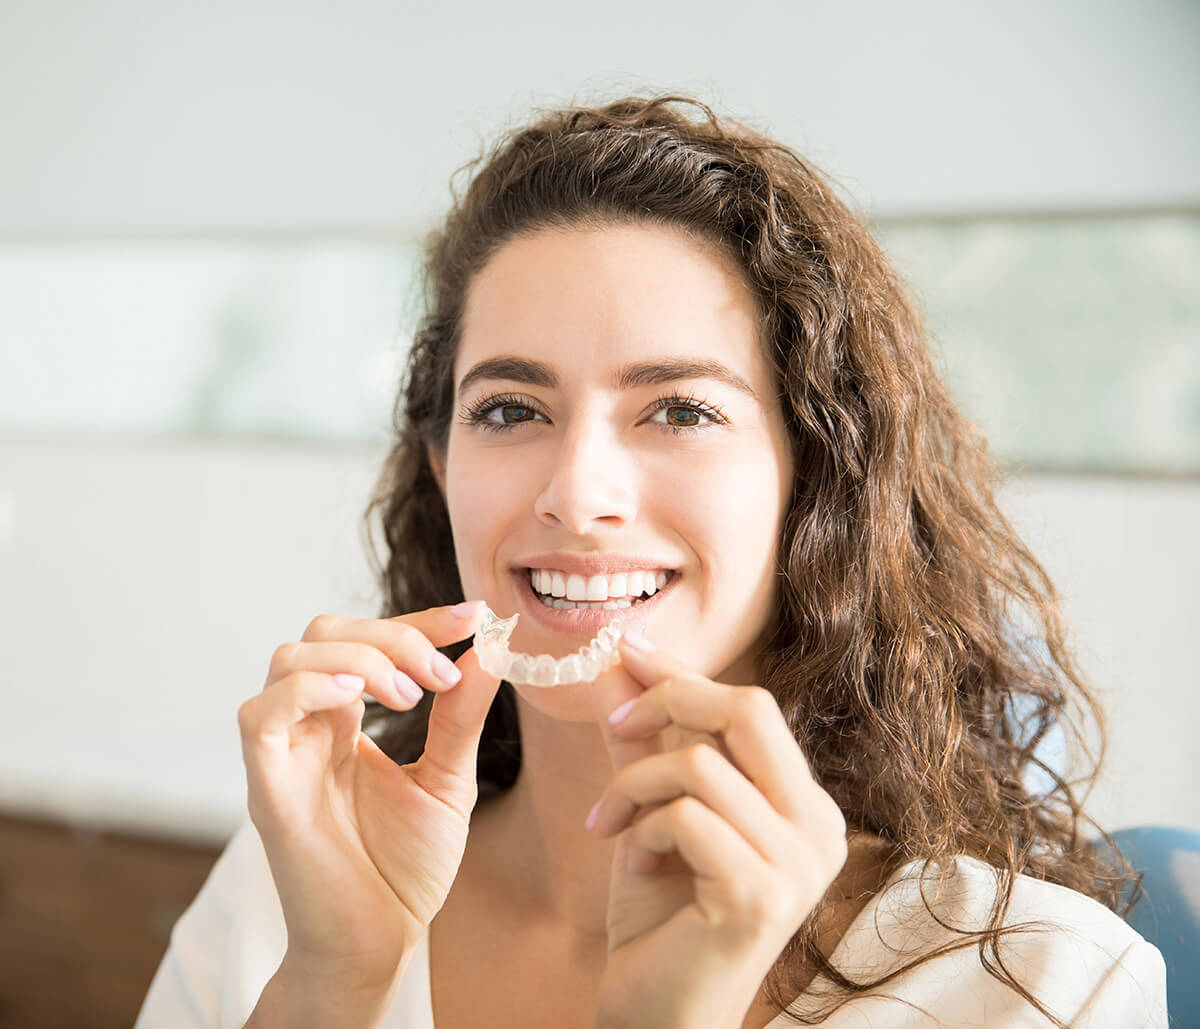 Invisalign Dentist in Burlington Area Helps You Achieve the Smile You've Always Wanted